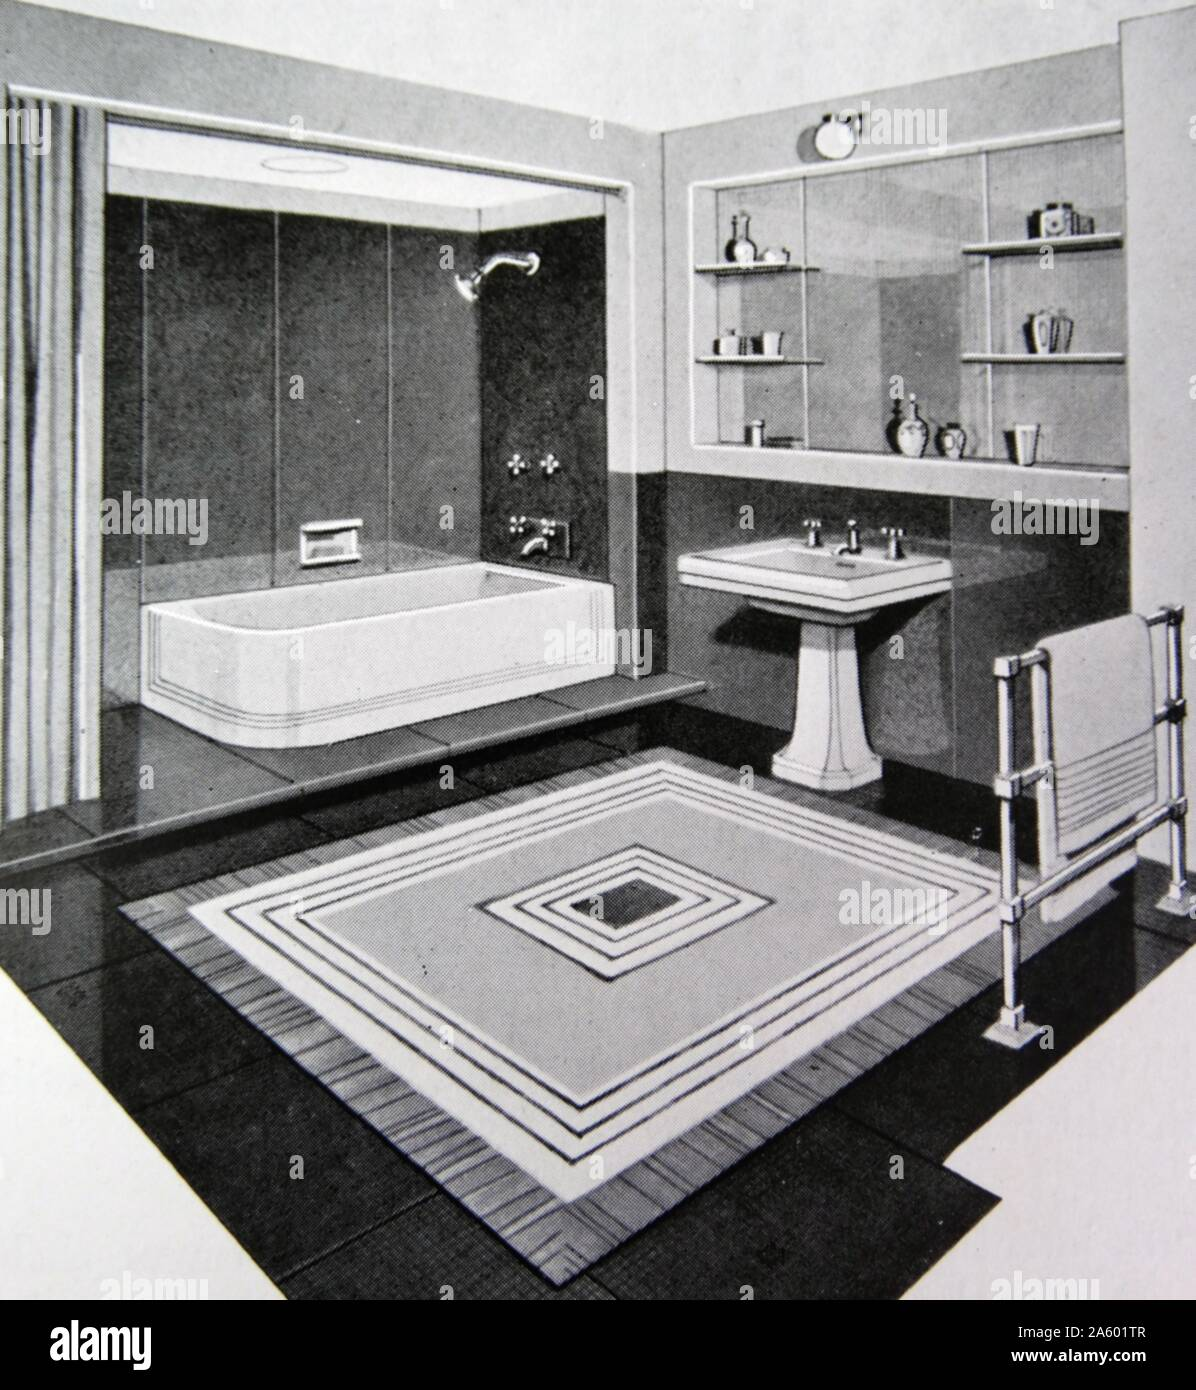 Illustration Of A 1950s Modern Bathroom Stock Photo 330686407 Alamy